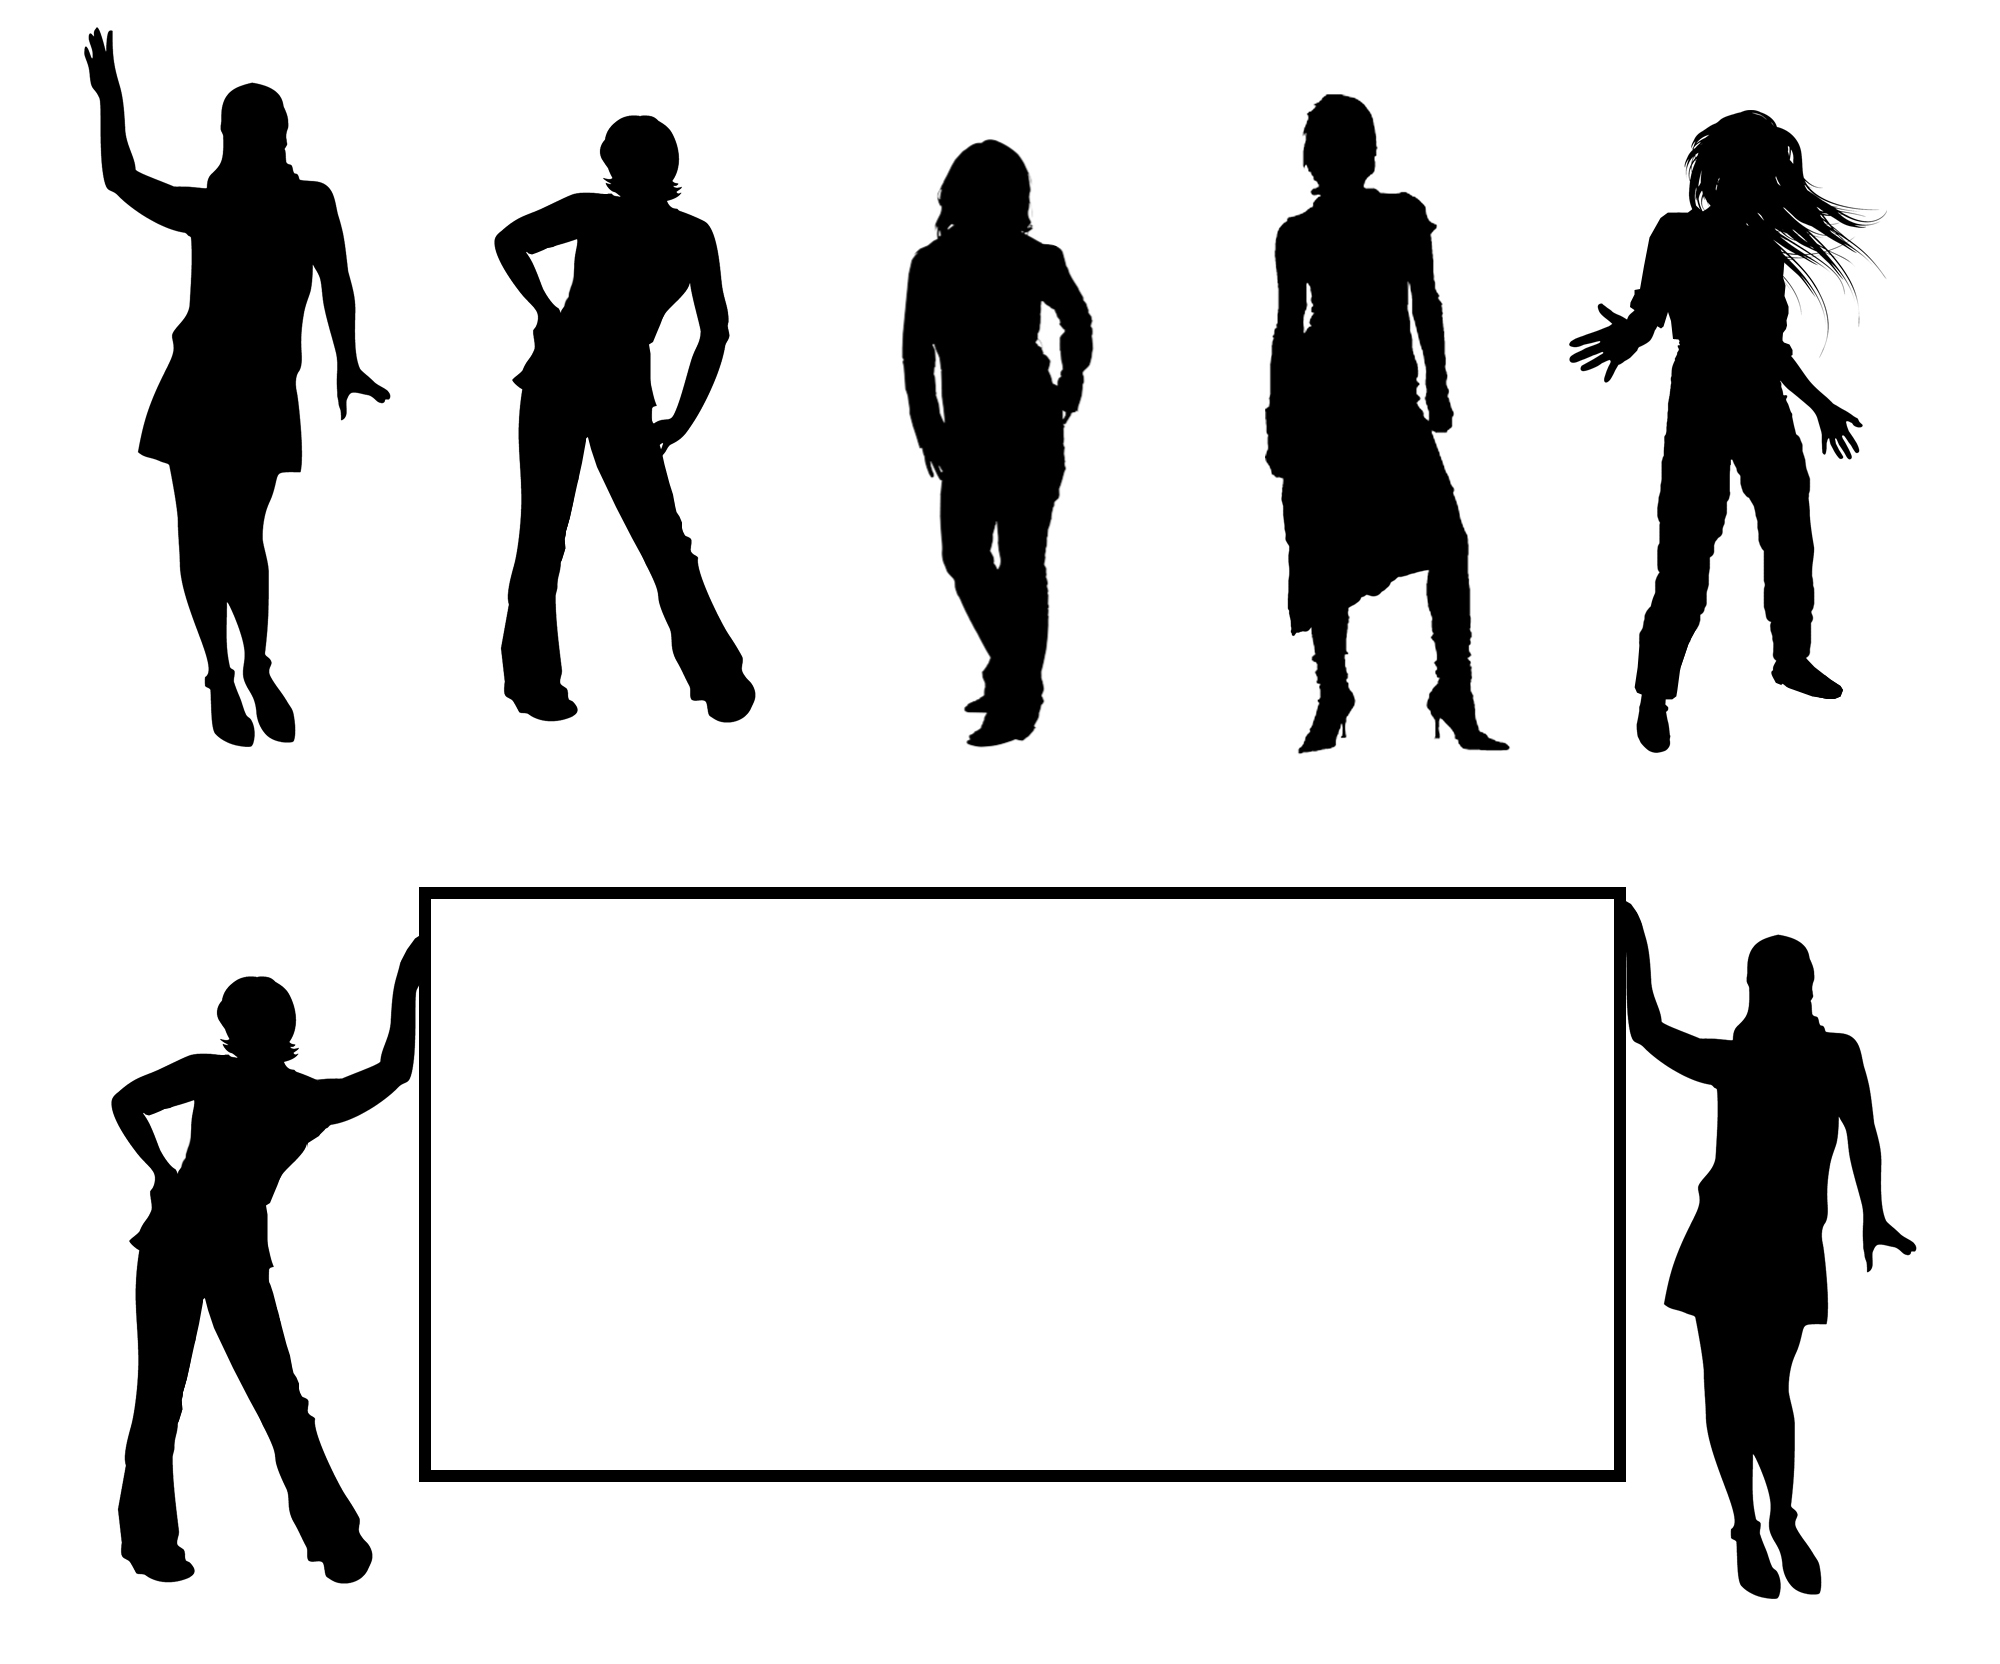 Silhouette clipart #12, Download drawings